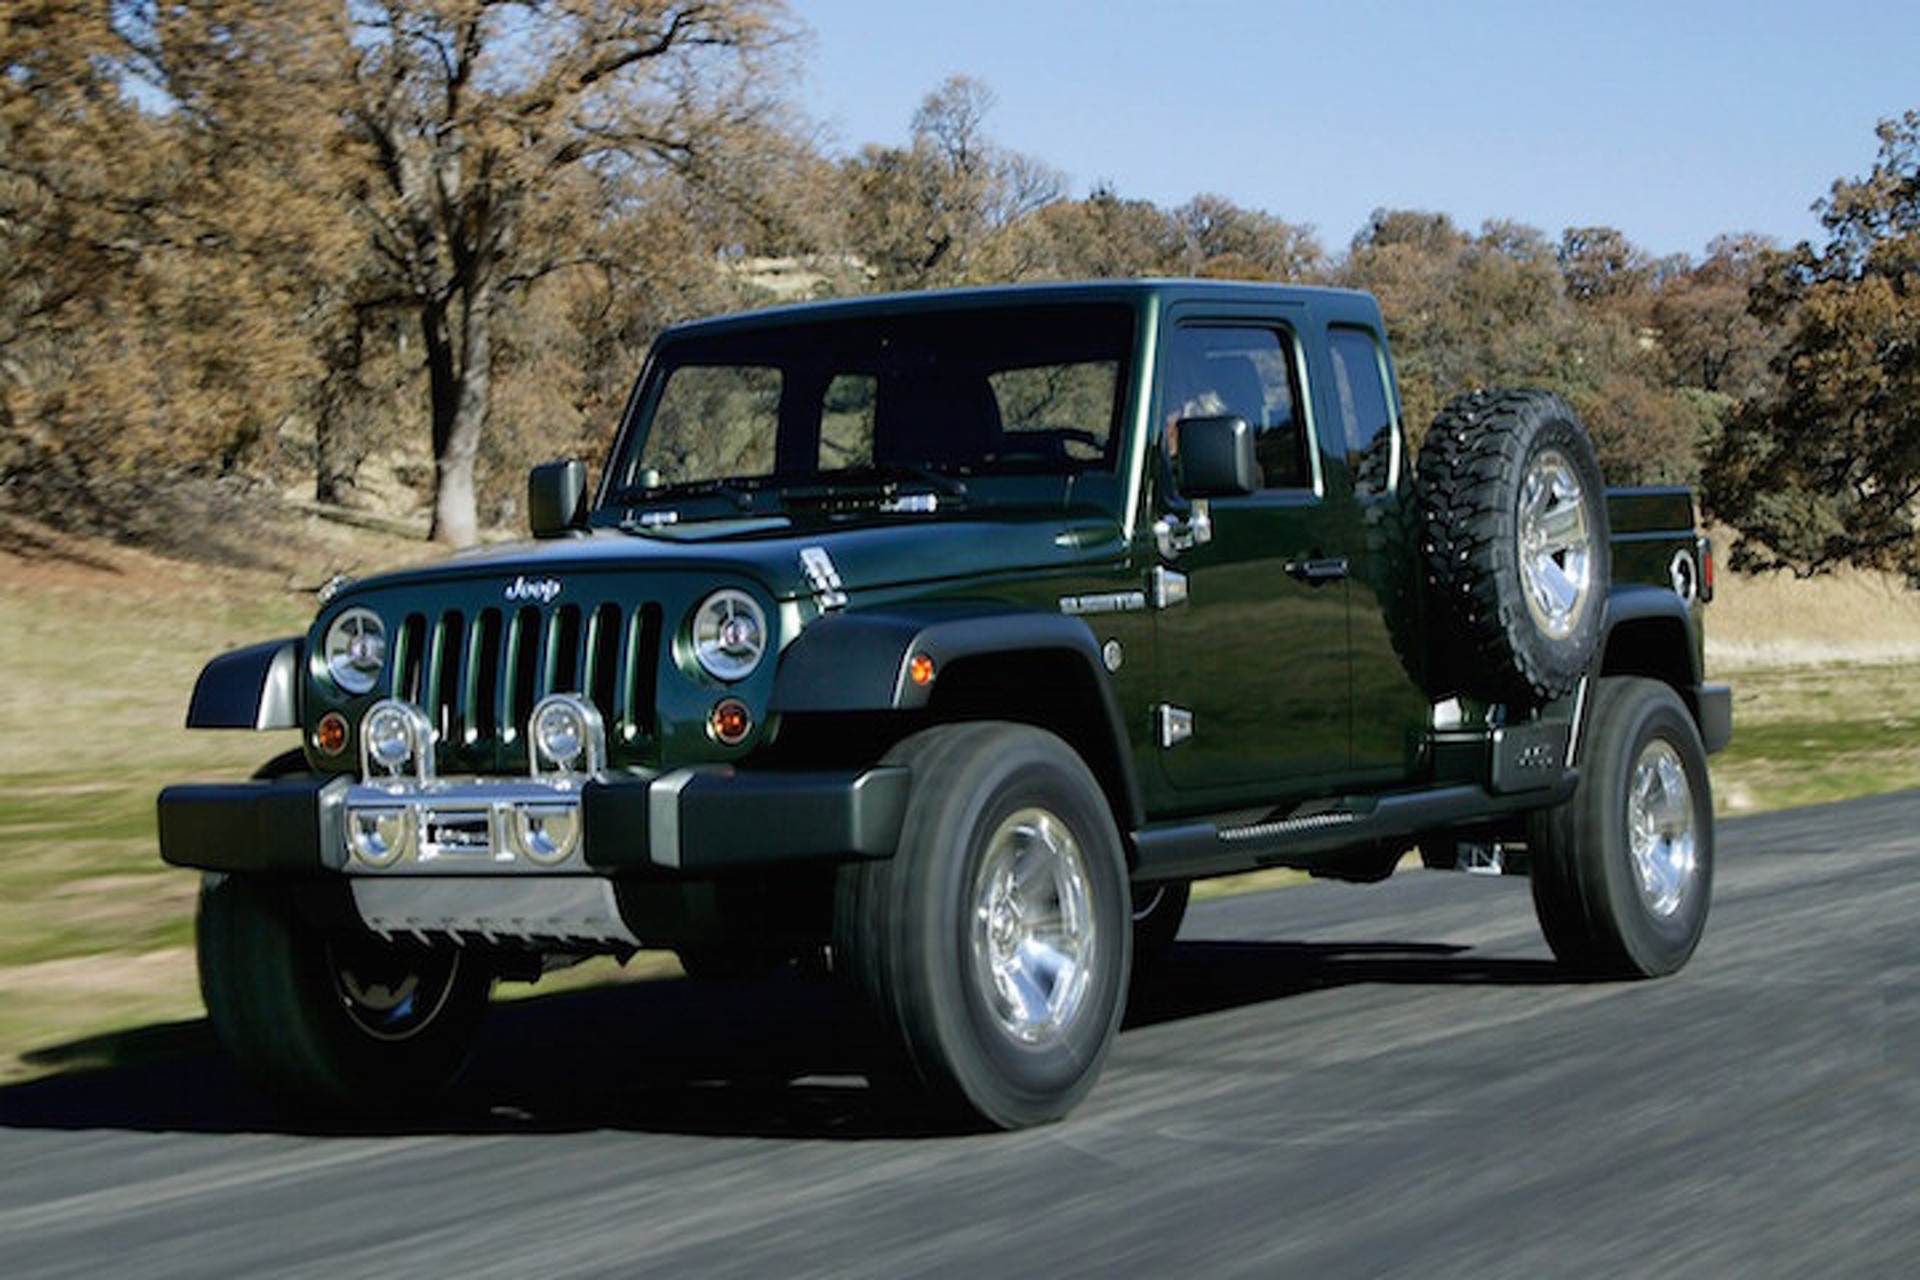 Confirmation The Jeep Wrangler Pickup Is Happening